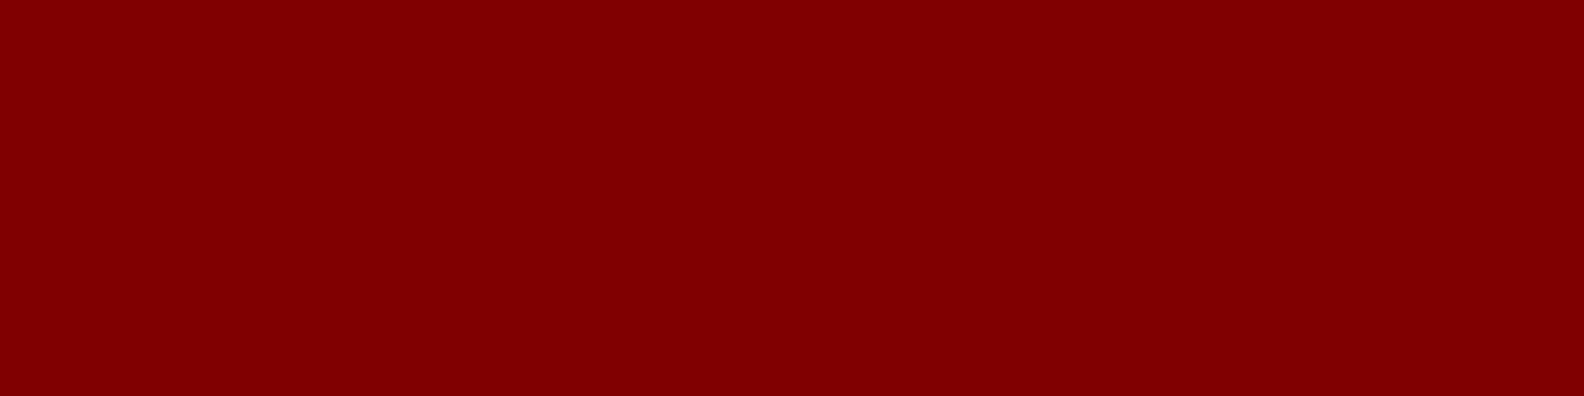 1584x396 Maroon Web Solid Color Background